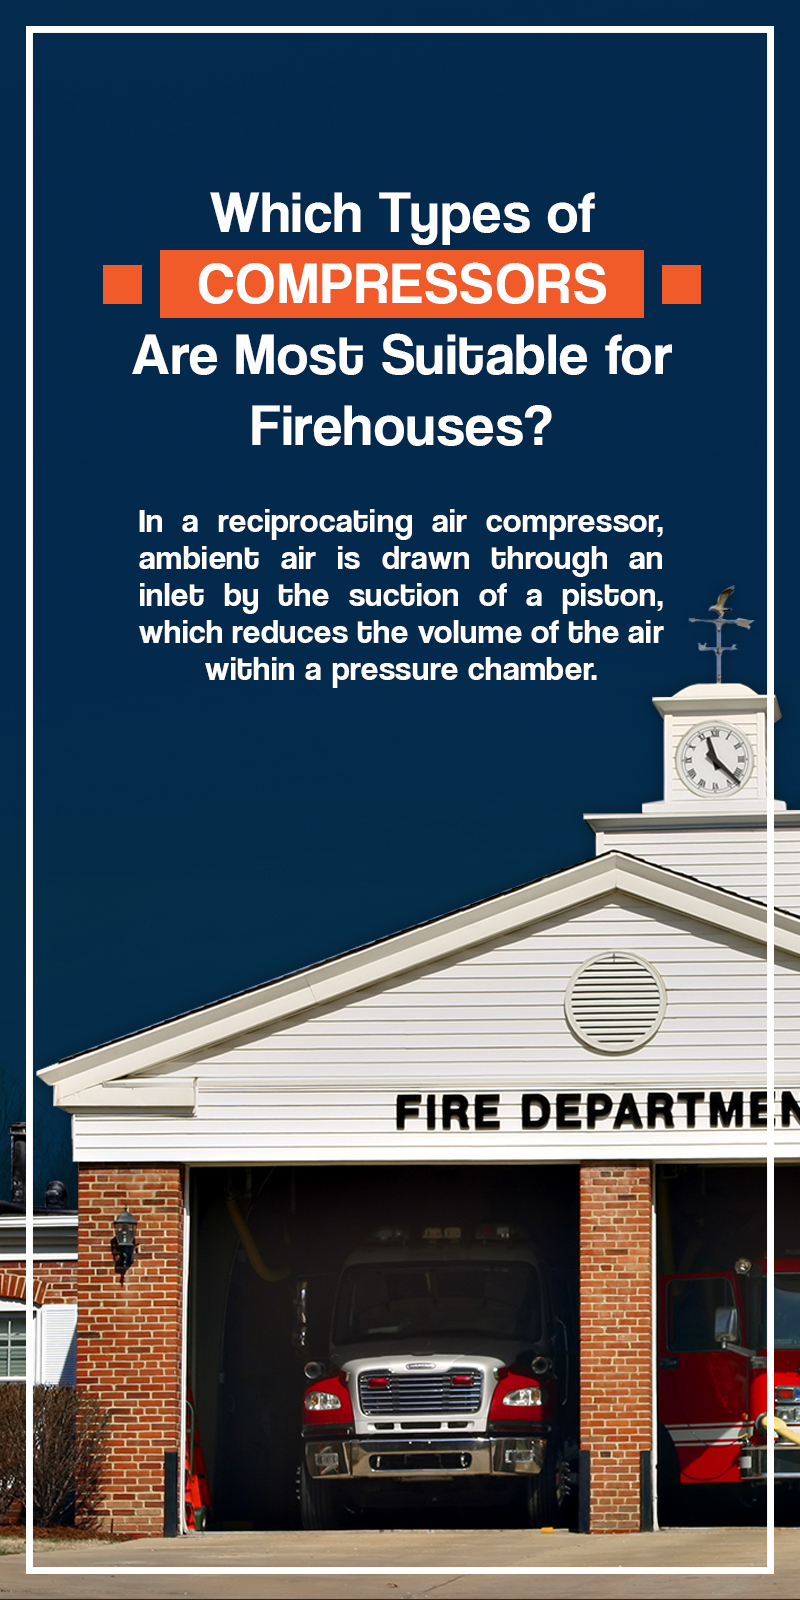 what types of compressors are most suitable for firehouses?